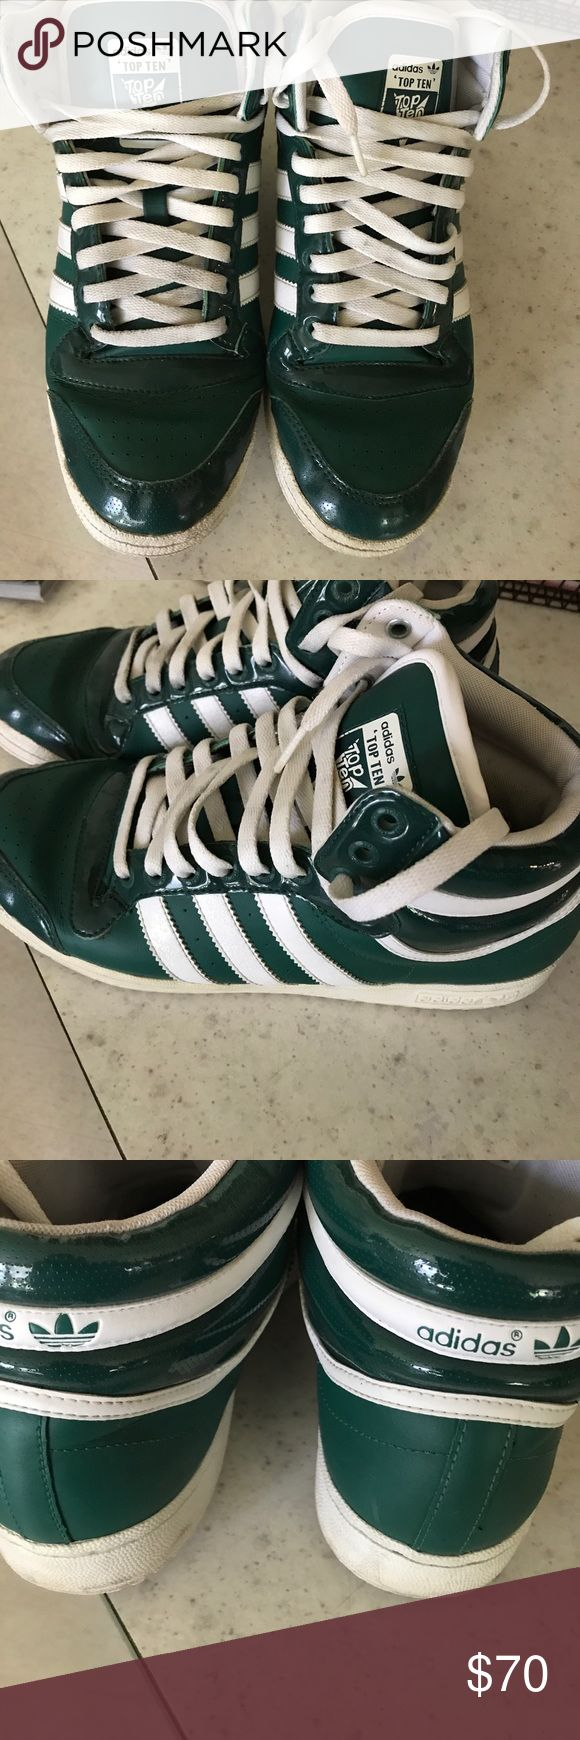 Adidas Top Ten Retro Basketball Shoes Excellent used condition. adidas Shoes Athletic Shoes